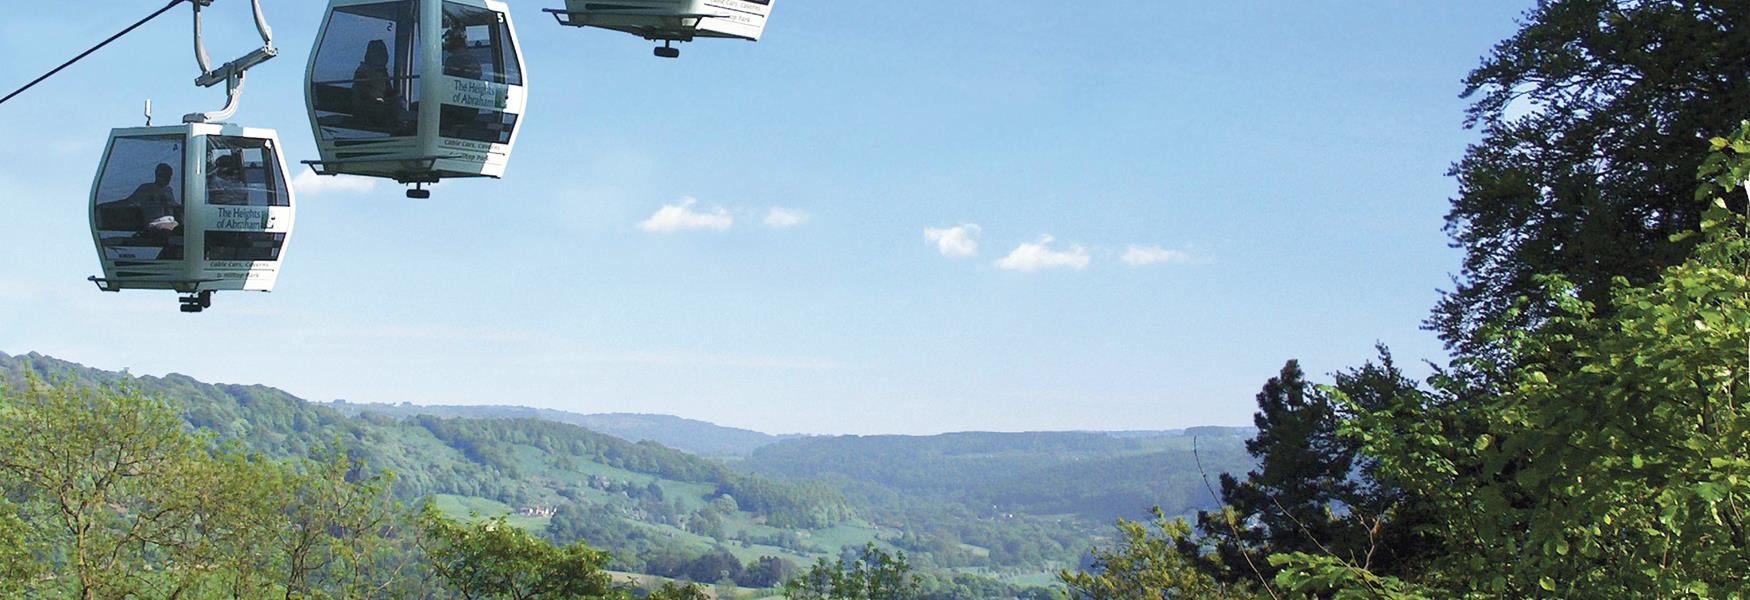 There are endless amounts of Things to Do in the Peak District